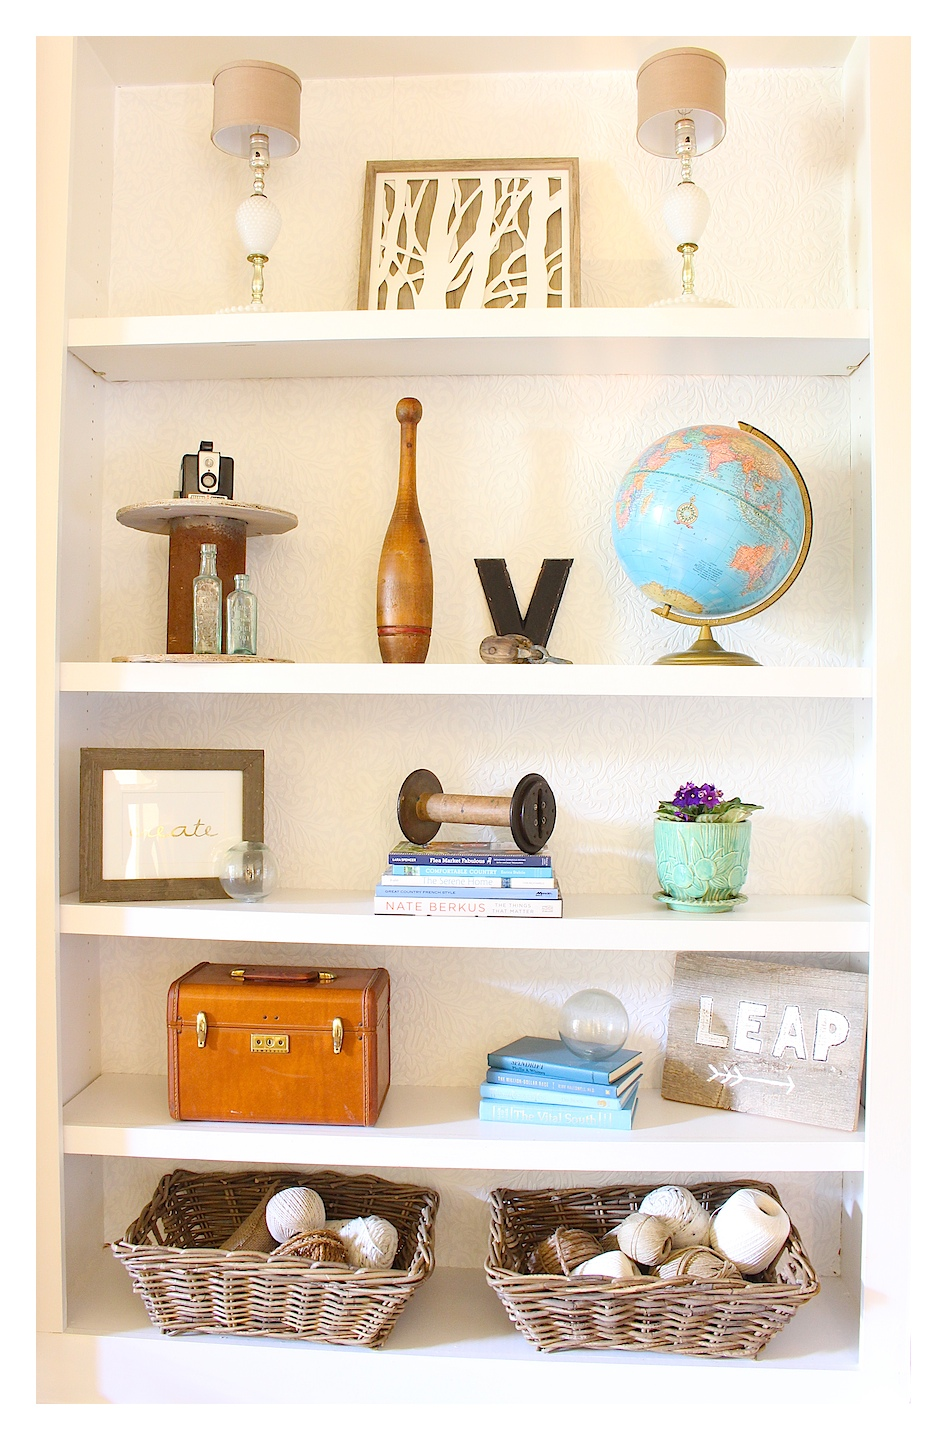 vintage decor in built-in bookcases